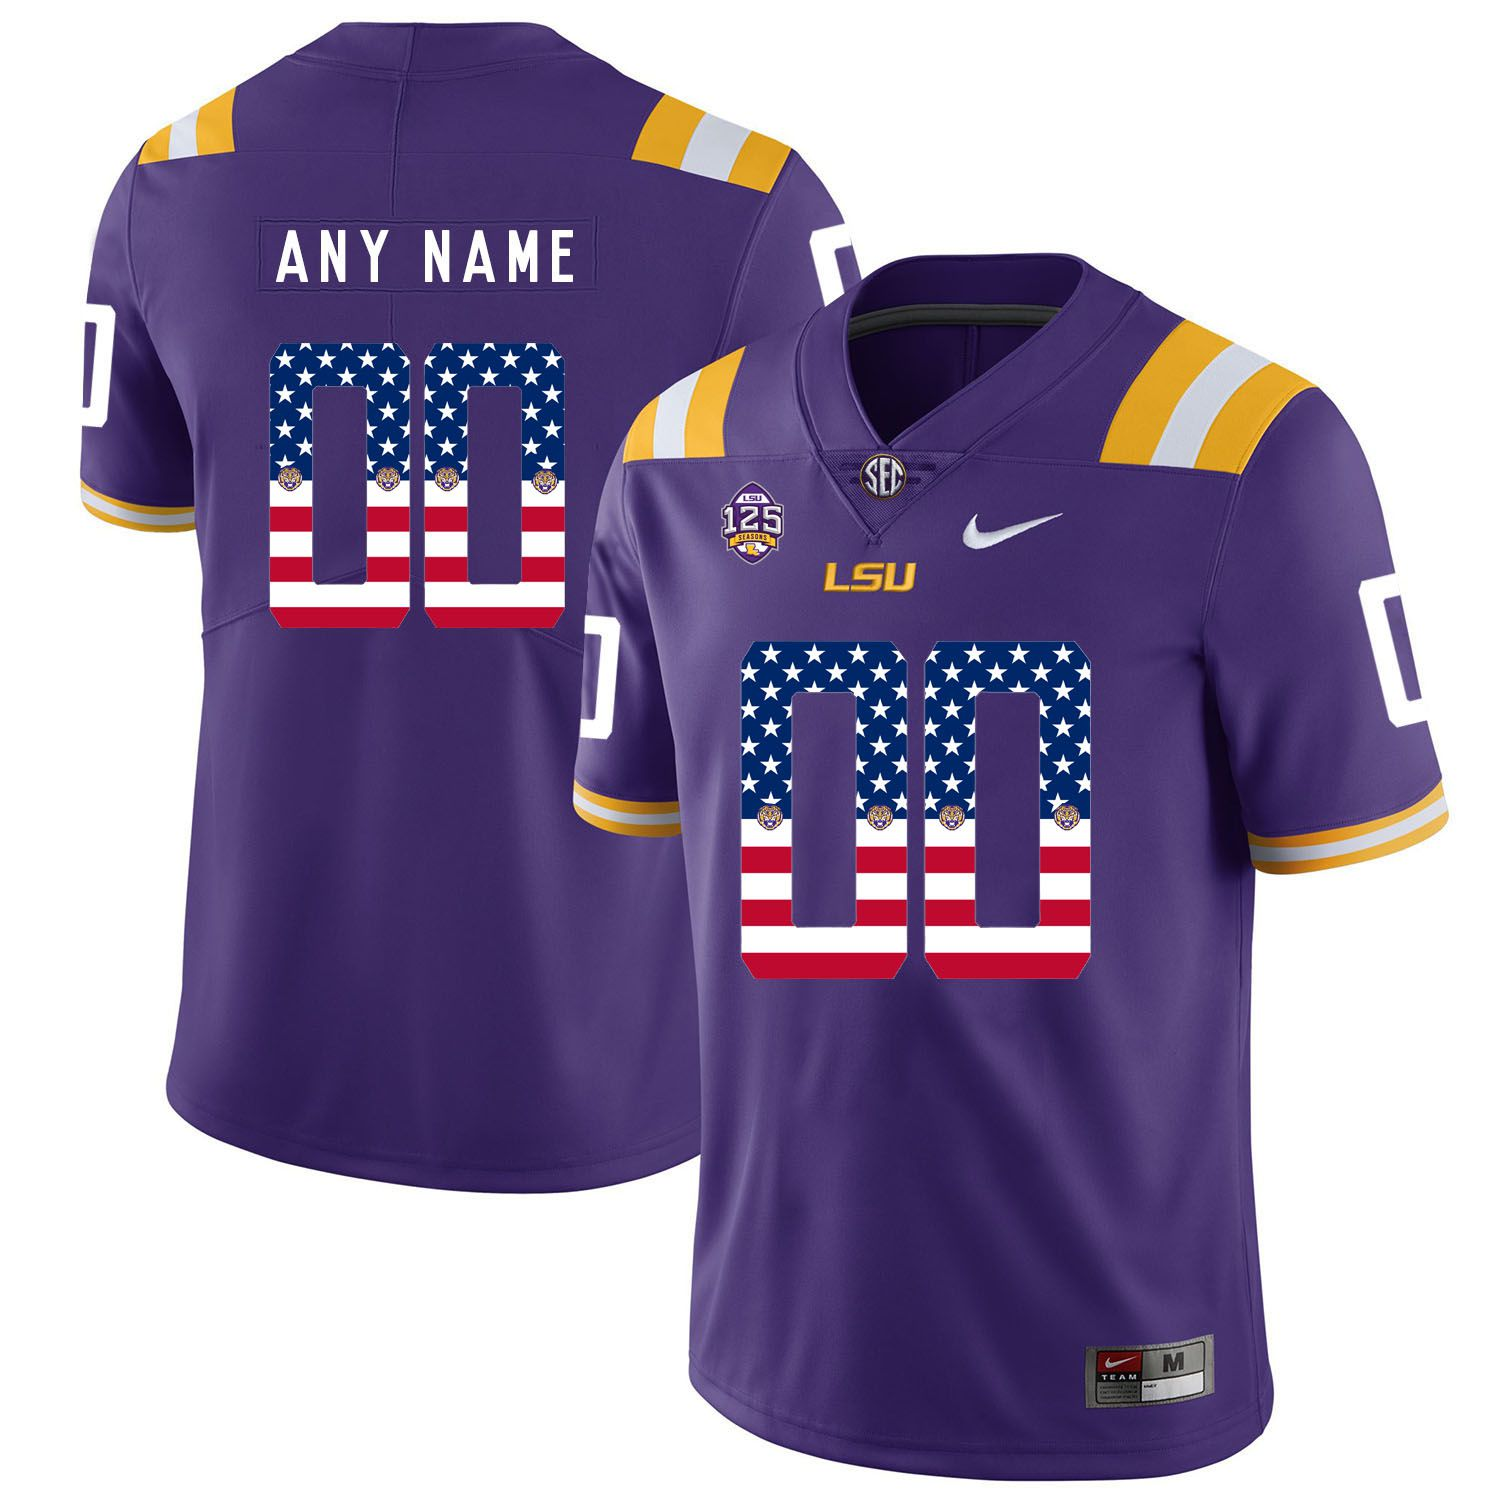 Men LSU Tigers 00 Any name Purple Flag Customized NCAA Jerseys